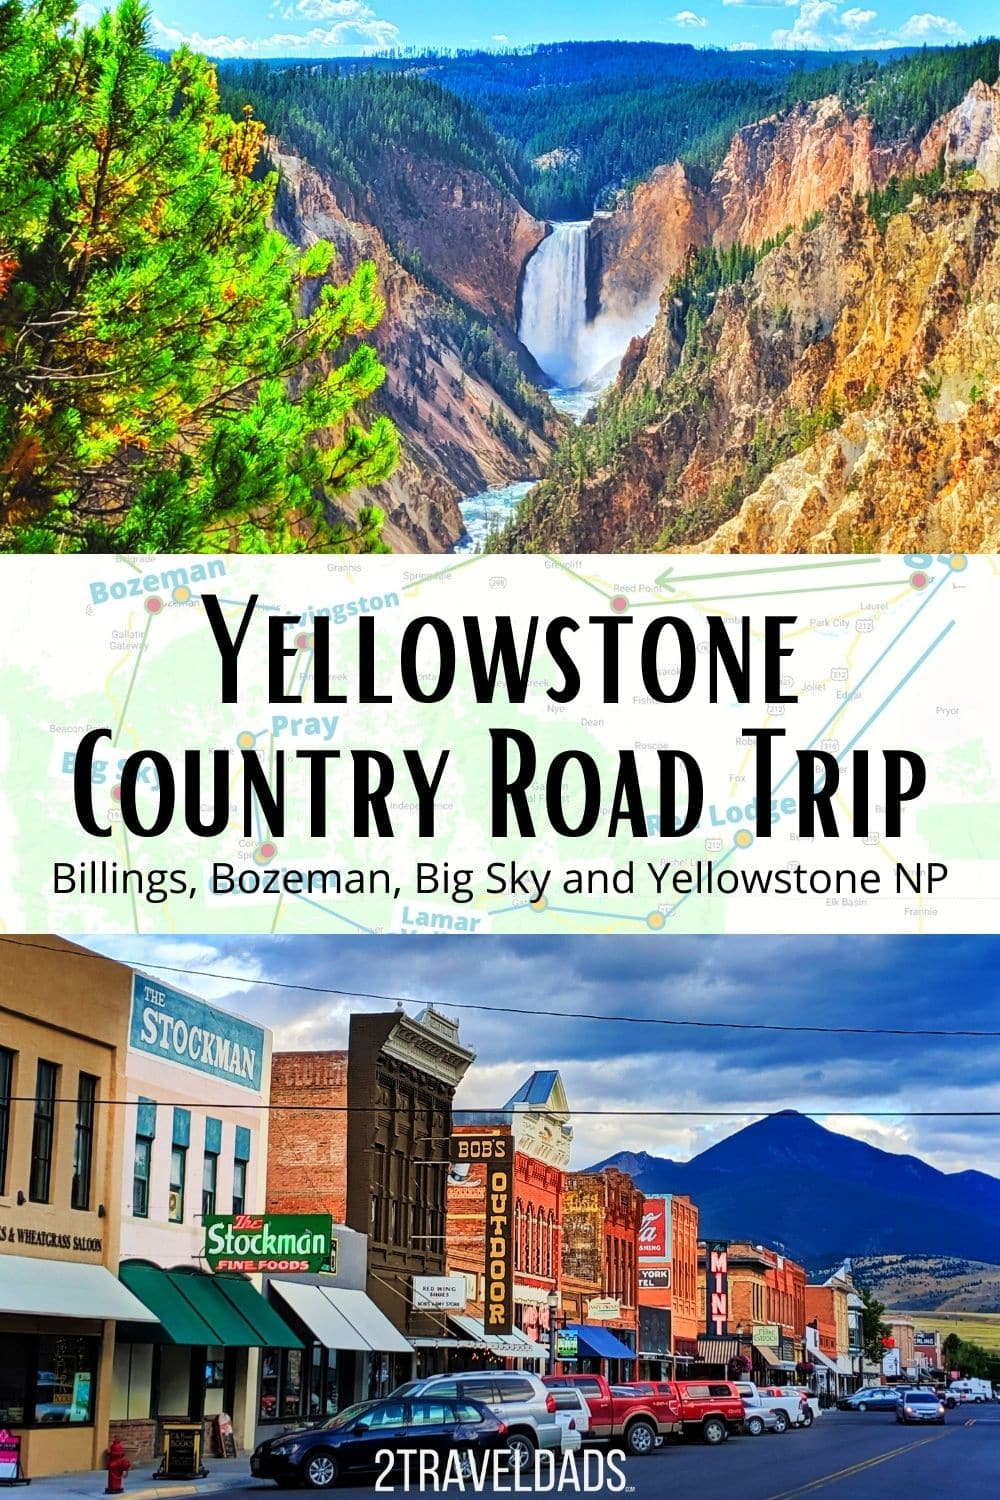 Yellowstone Country is perfect for a Montana road trip. Starting in Billings or Bozeman, explore Montana and Yellowstone National Park.